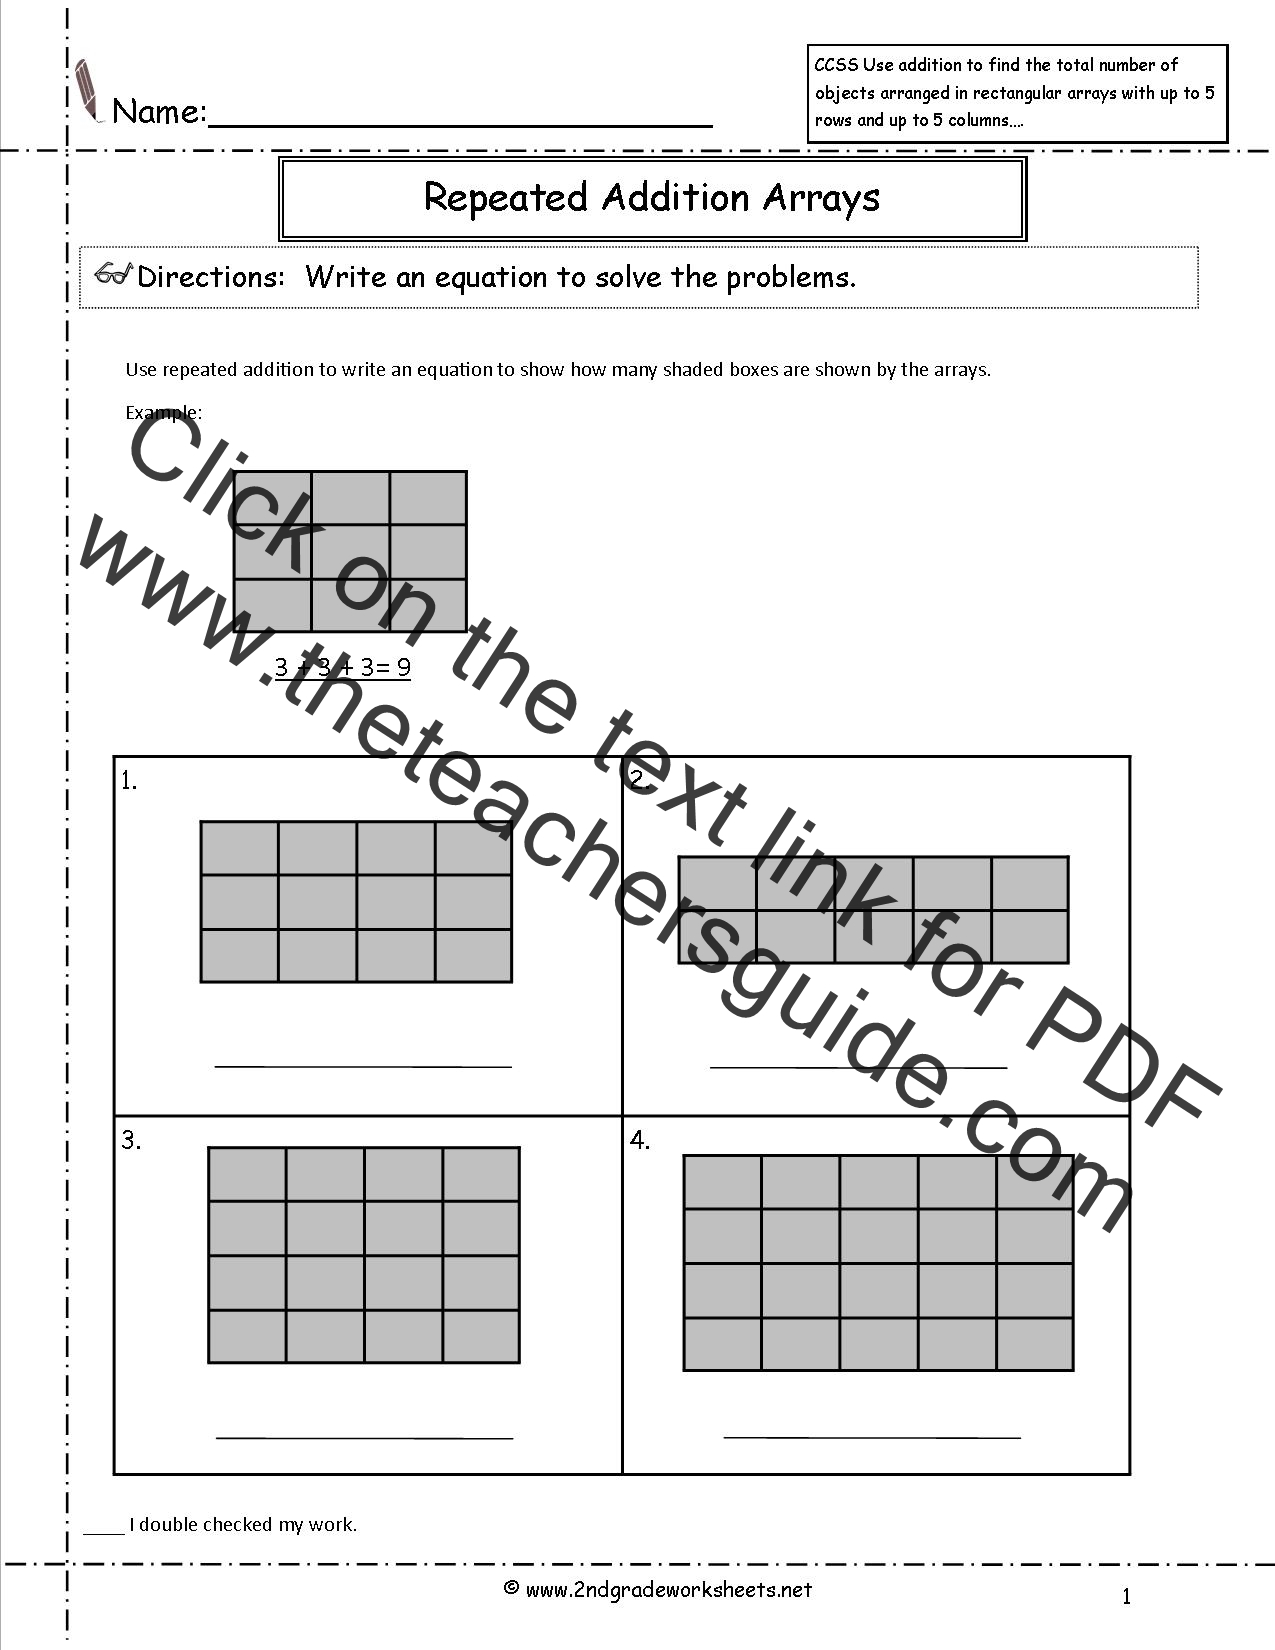 Multiplication As Repeated Addition Worksheet For Grade 3